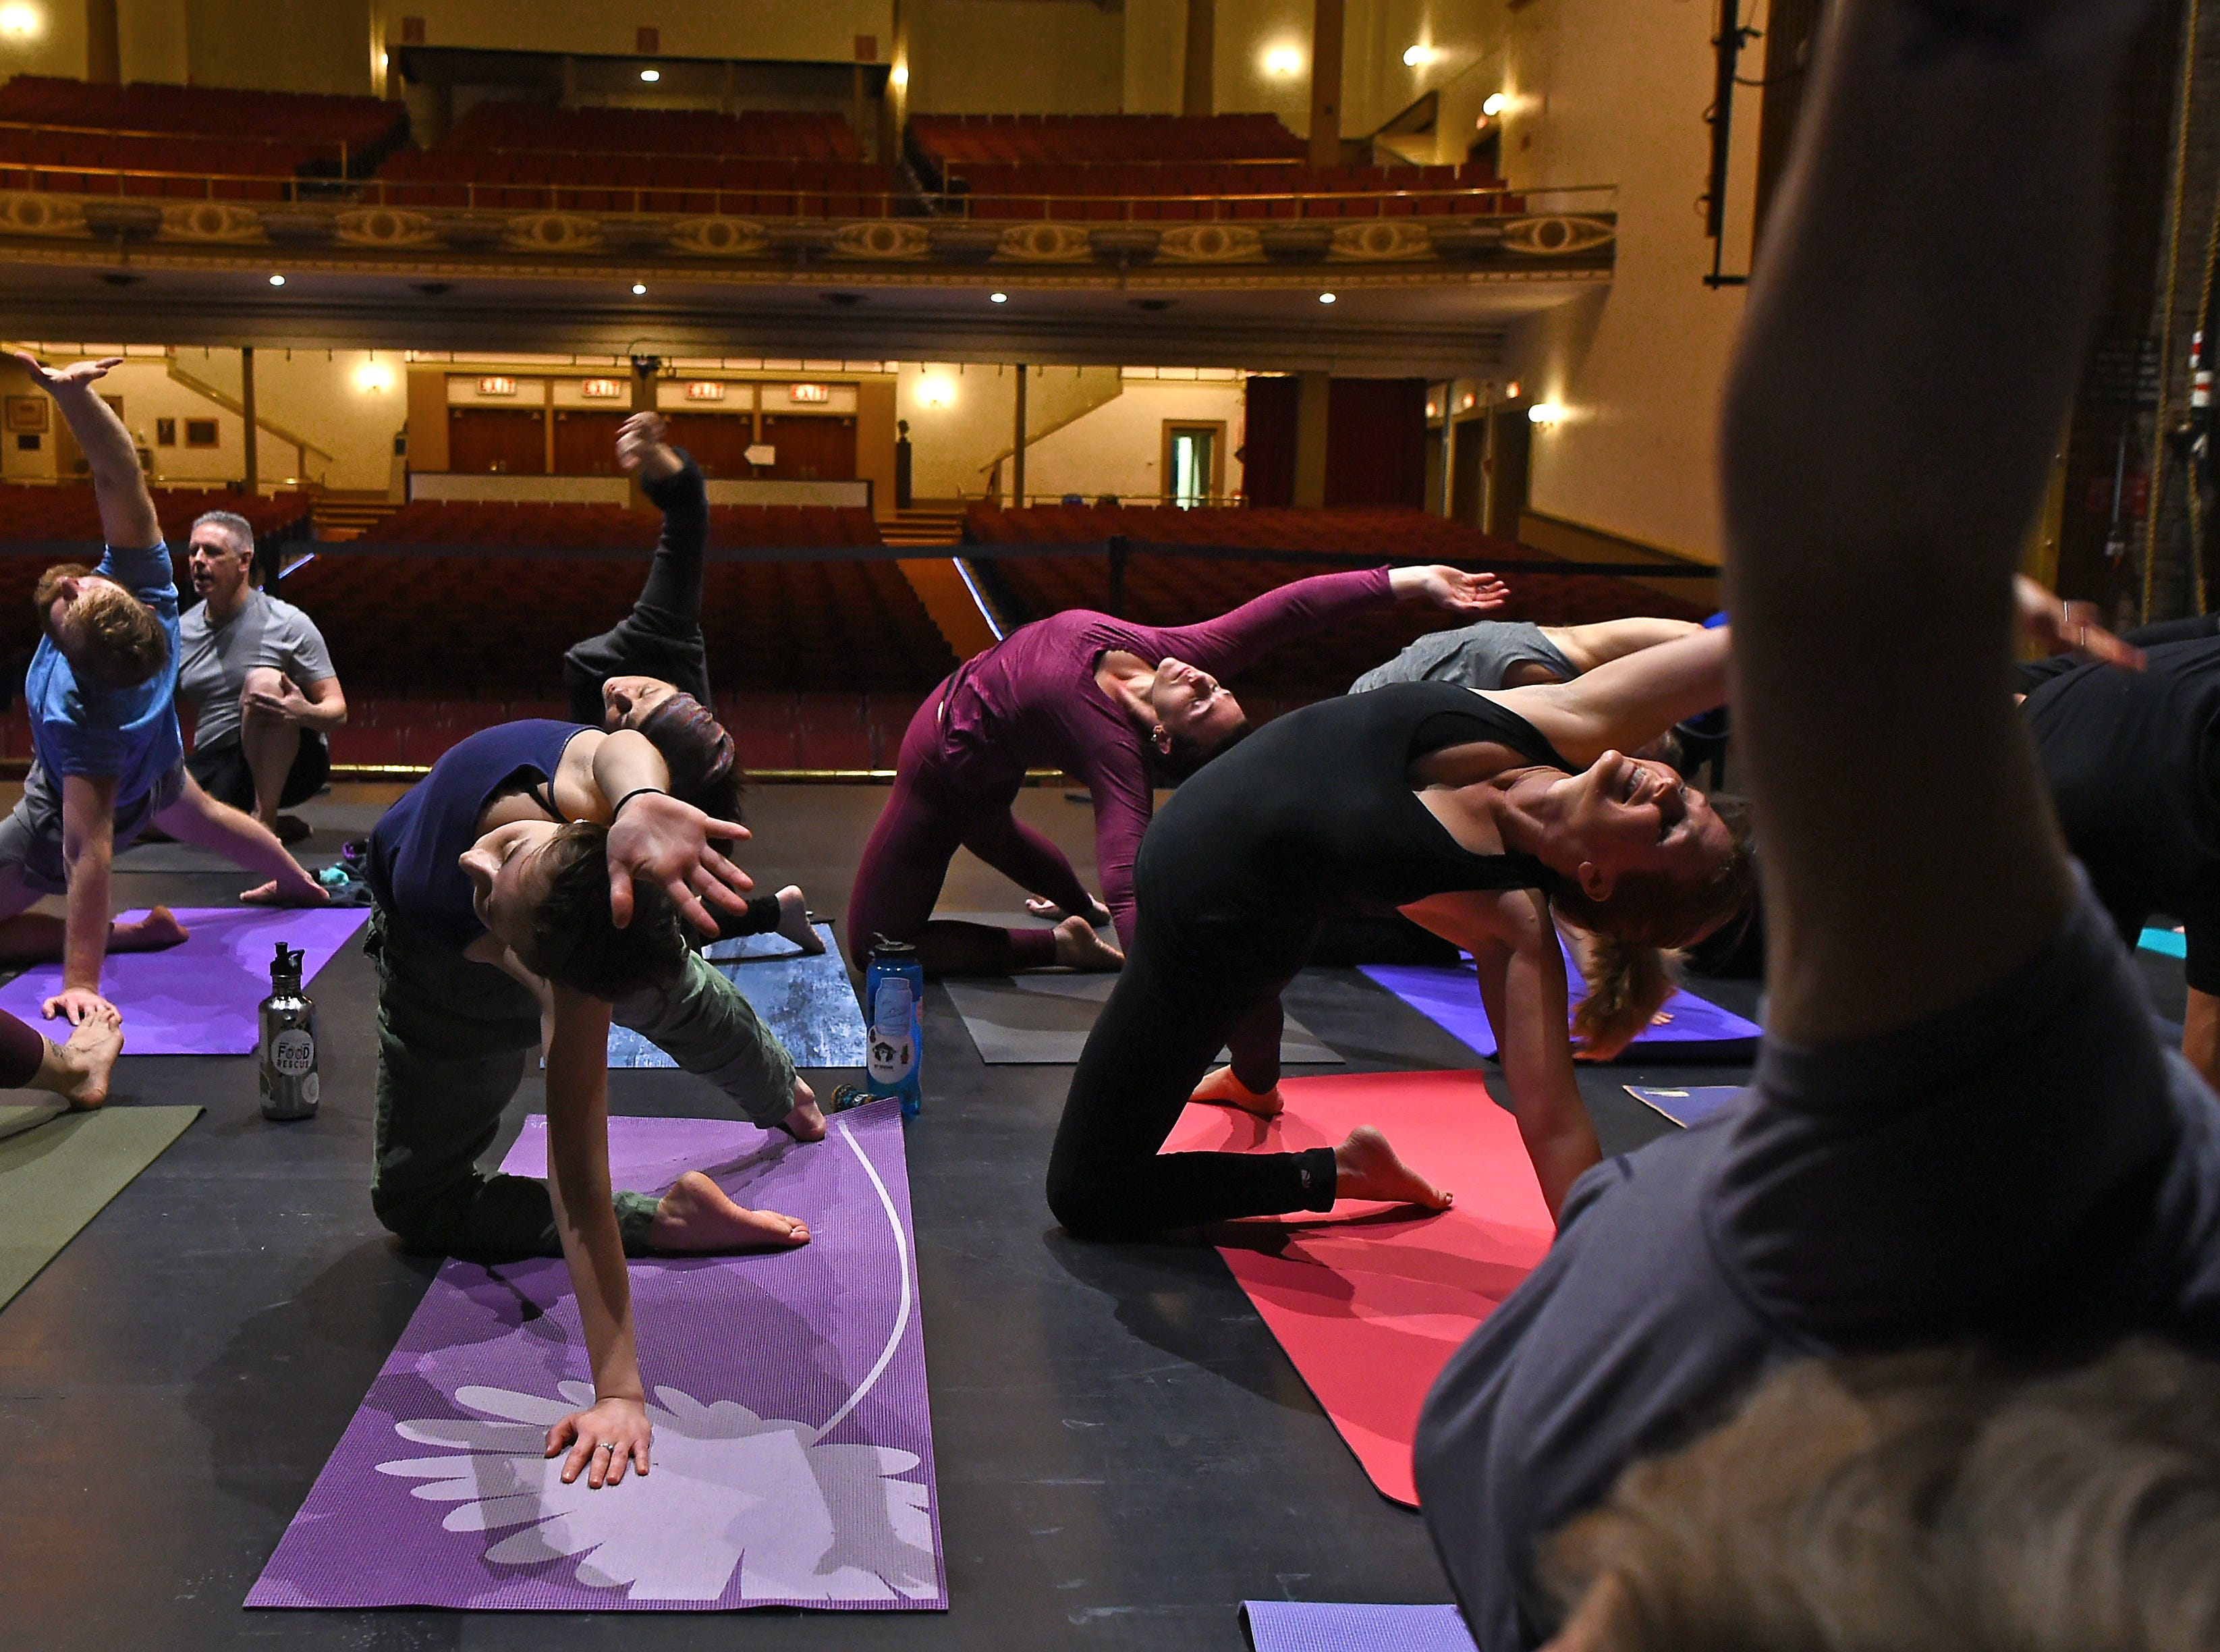 Binghamton Philharmonic, in collaboration with TRYOGA, presented two sessions of Yoga On The Stage at the Forum Theatre in Binghamton. The event featured live music by cellist Hakan Taygaon. Tuesday, January 8, 2018.